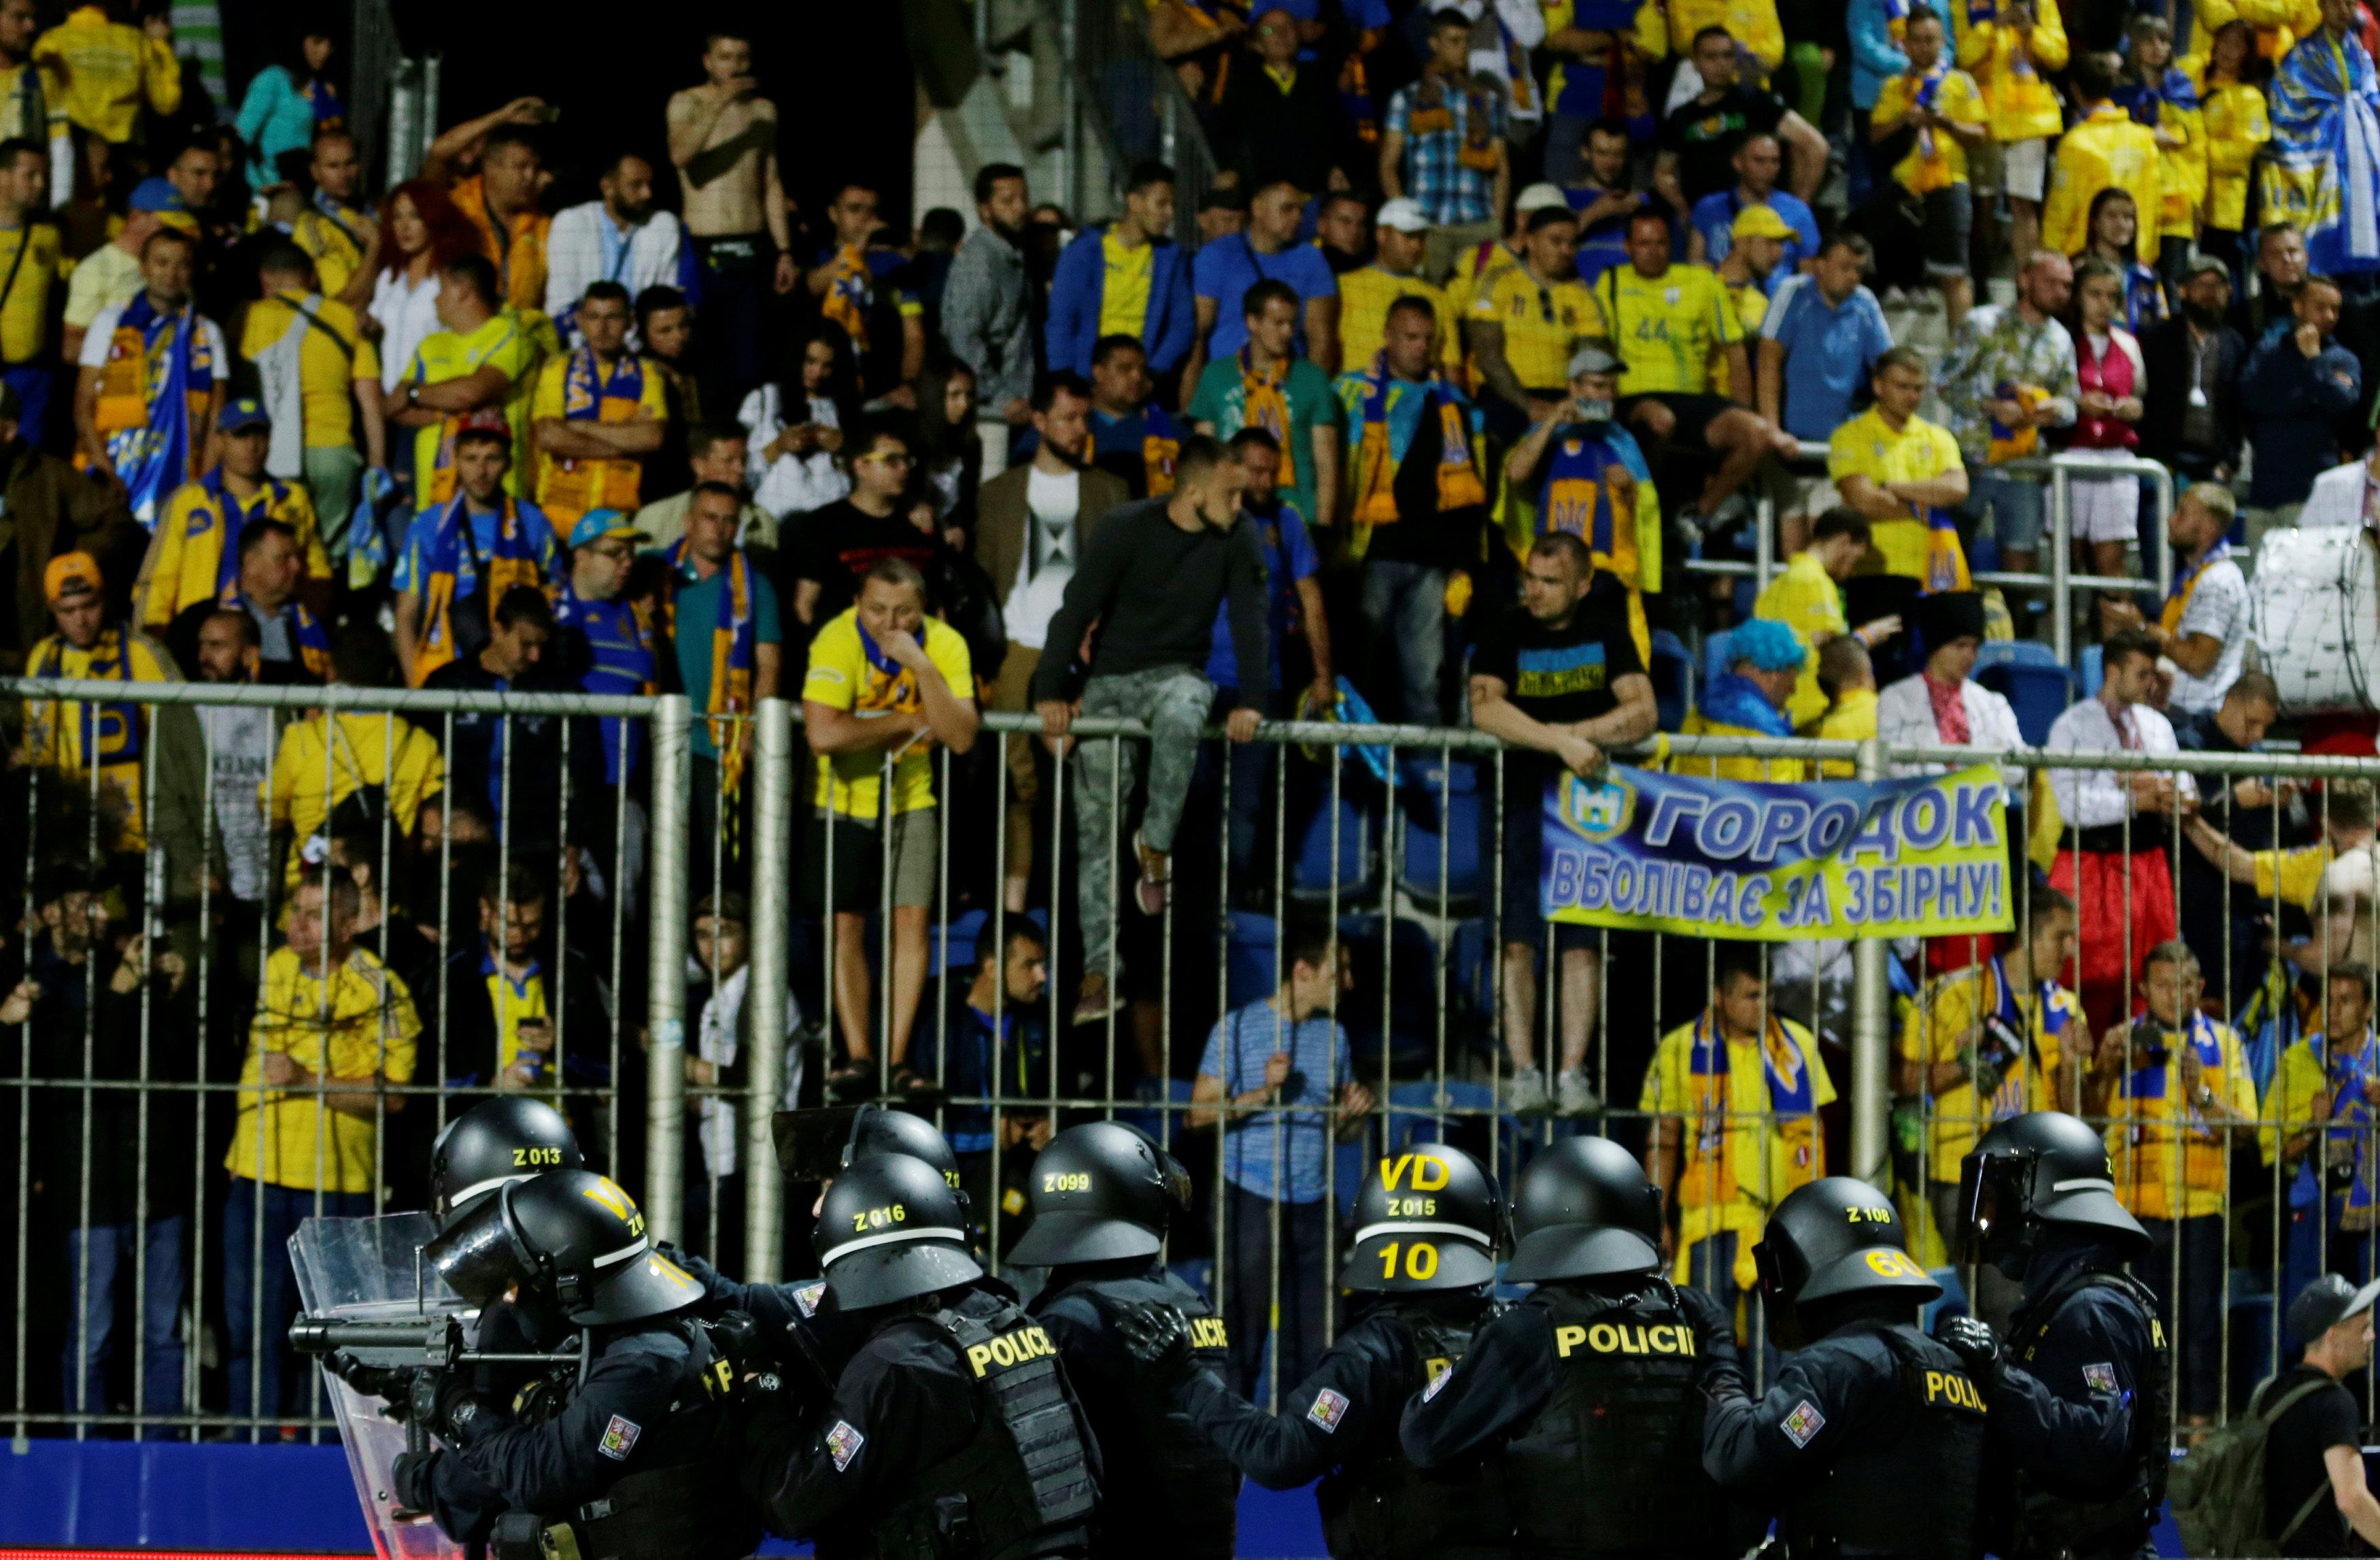 Riot police were forced to intervene after crowd trouble following the game